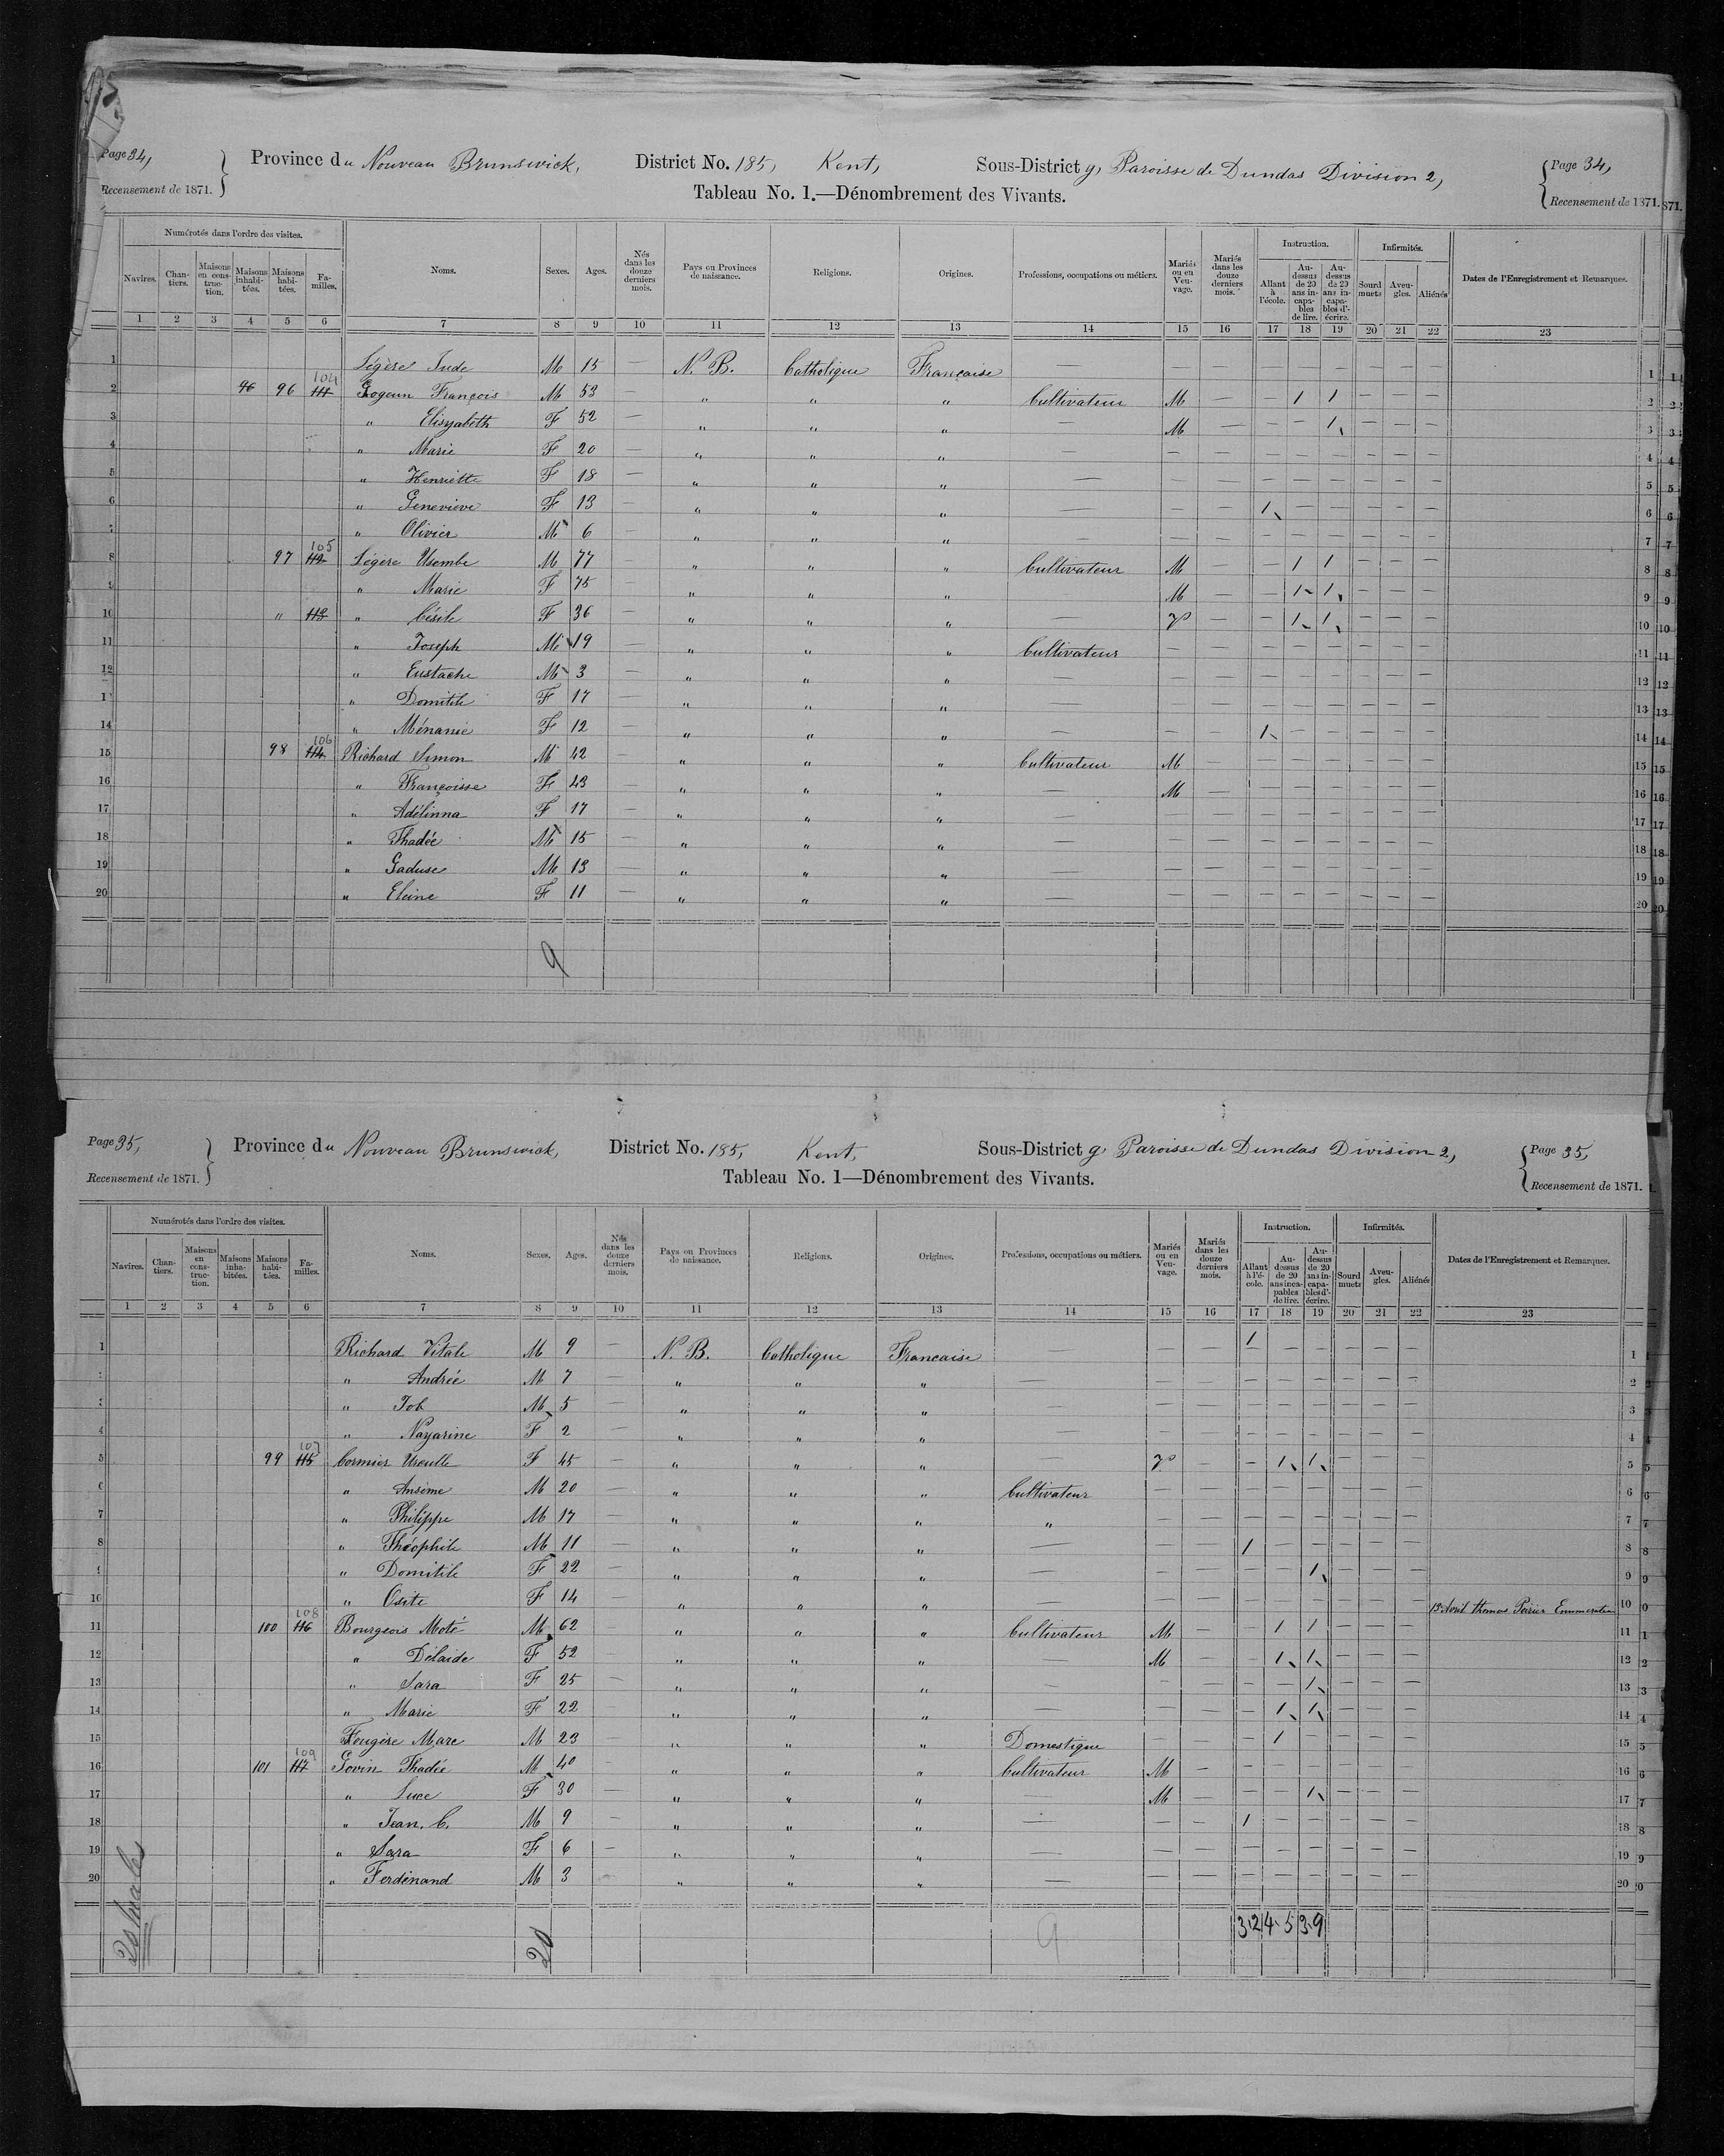 Digitized page of Census of Canada, 1871, Page number 34, for Francois Goguin